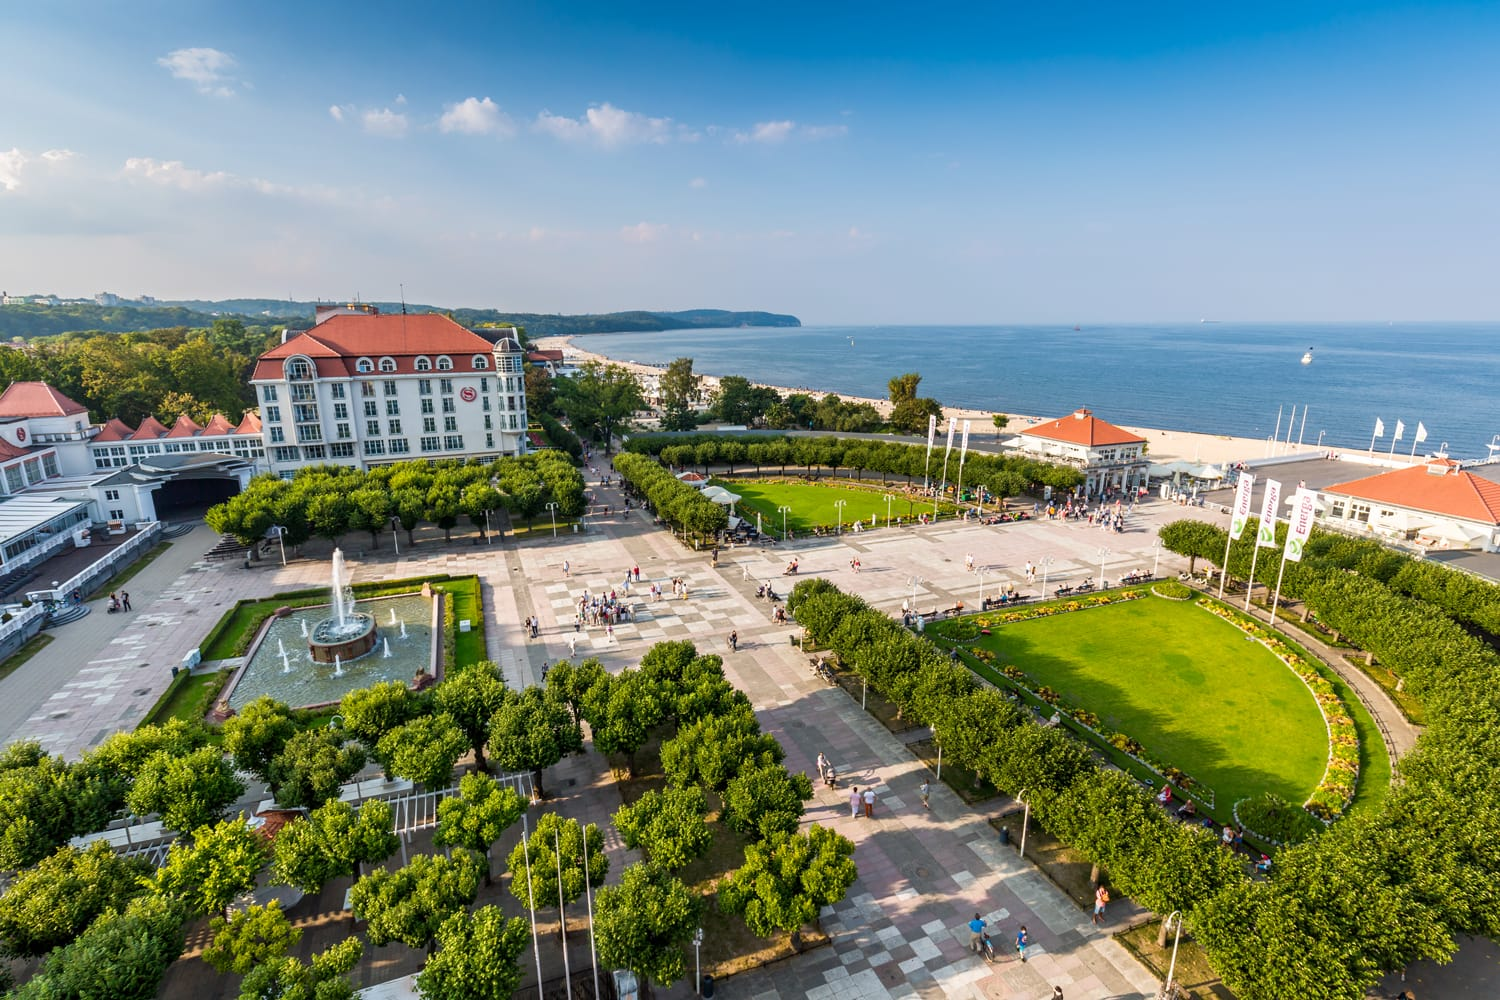 View of the Sopot City in Poland